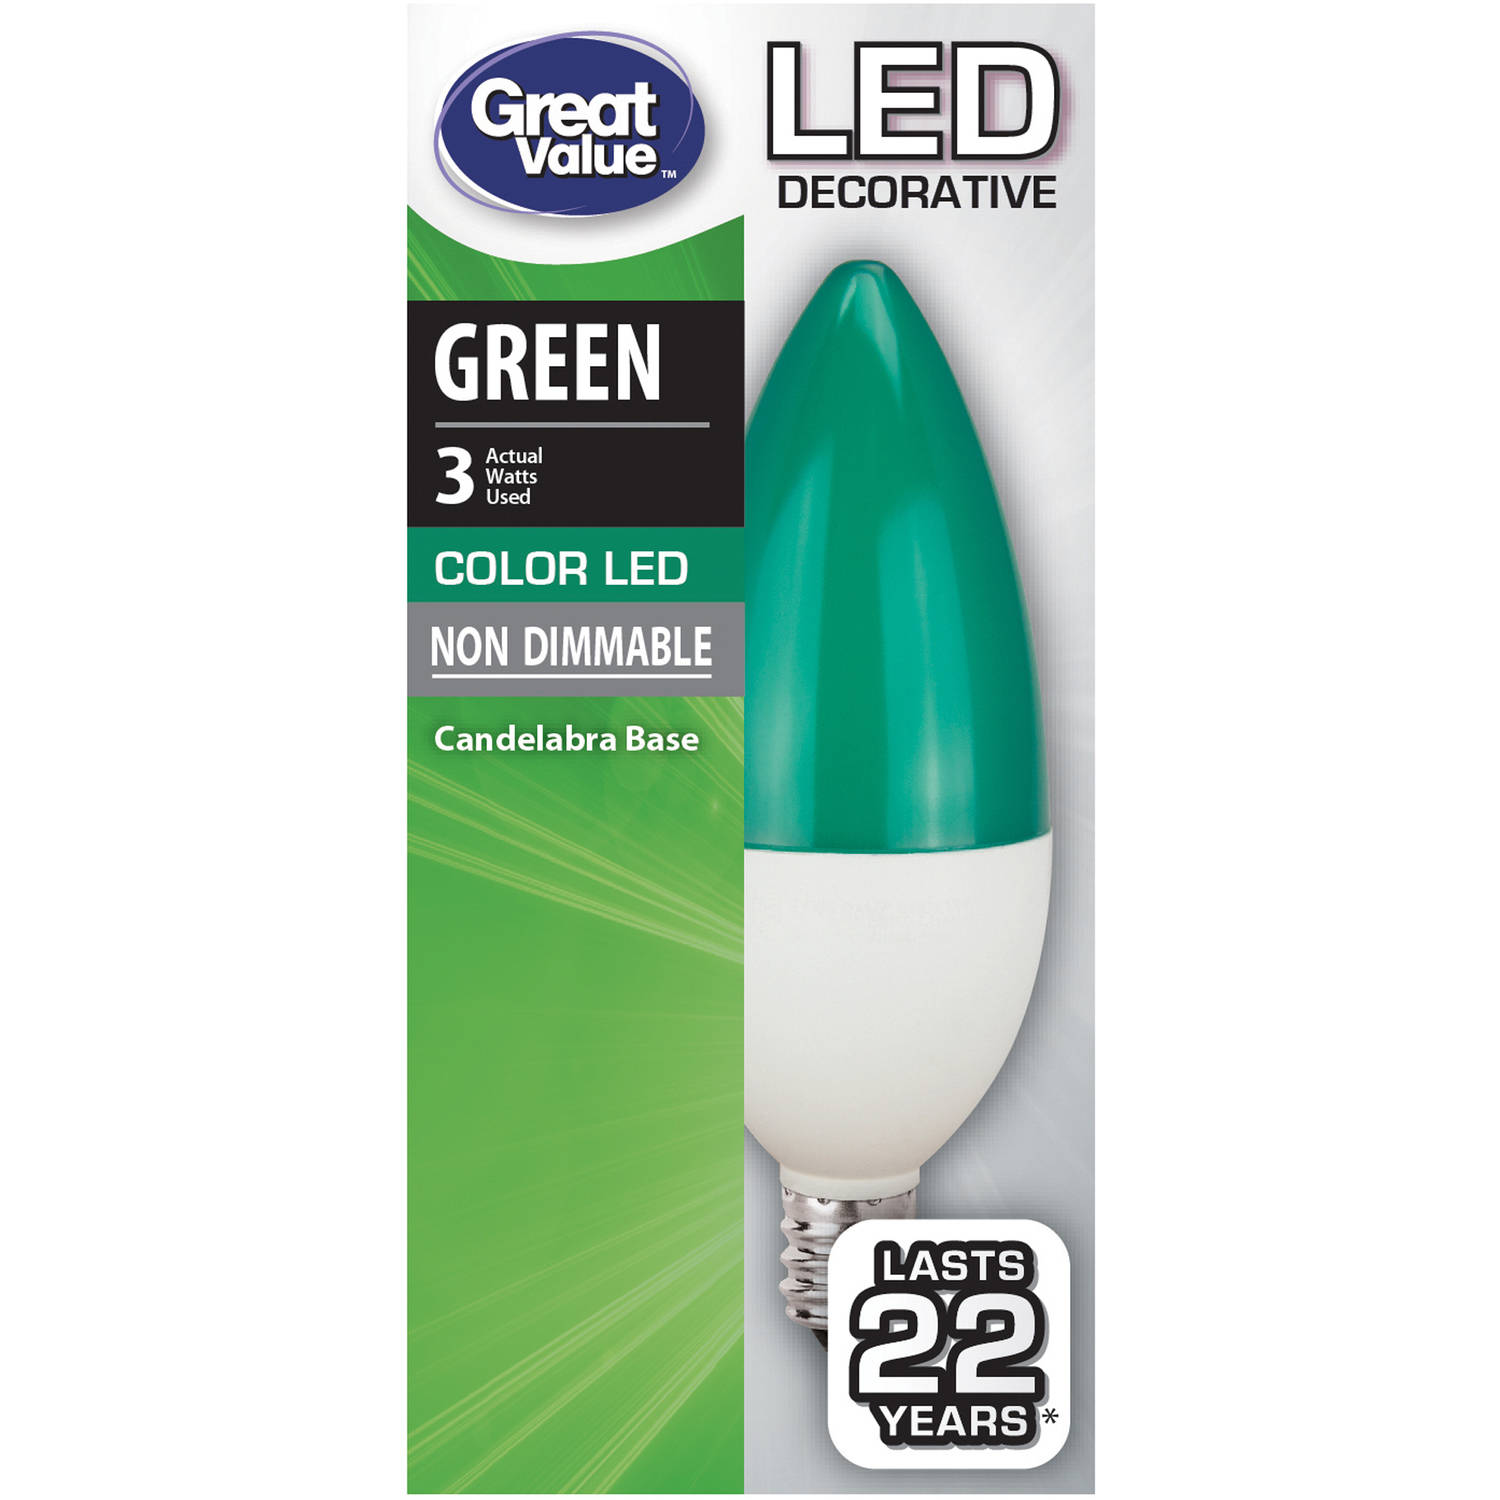 Great Value LED Decorative (E12) Light Bulb, 5 Watt, Green